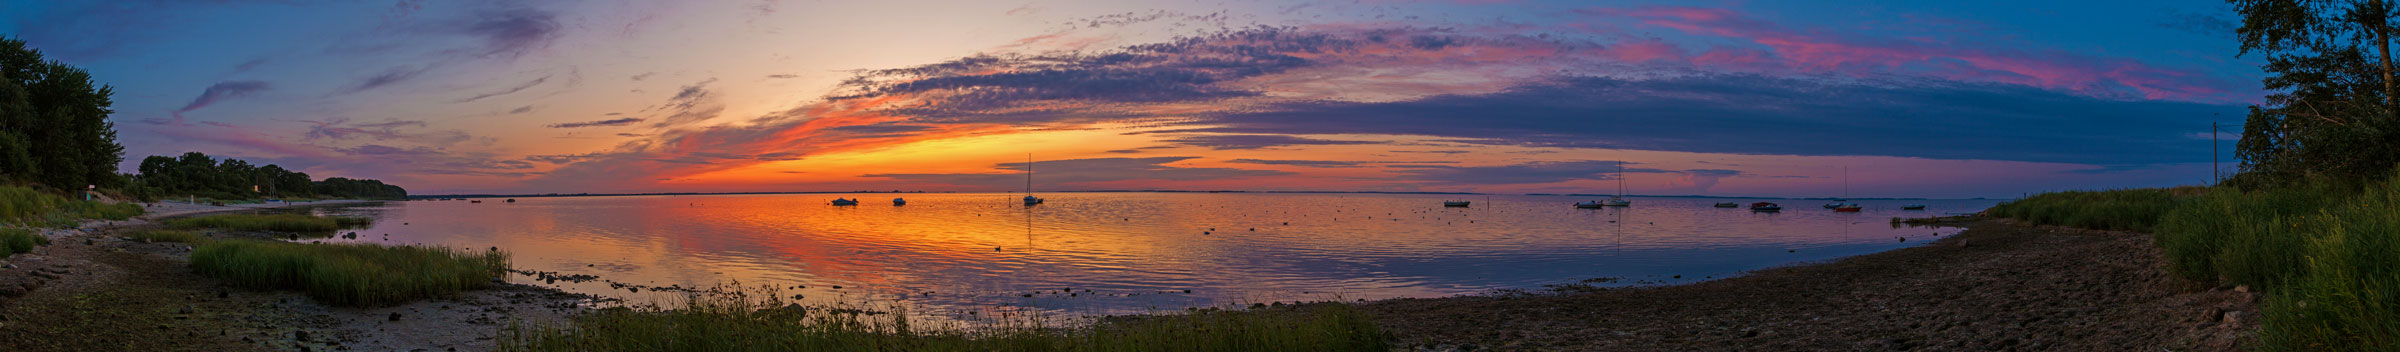 Sonnenuntergang in Loissin bei Greifswald als Panorama